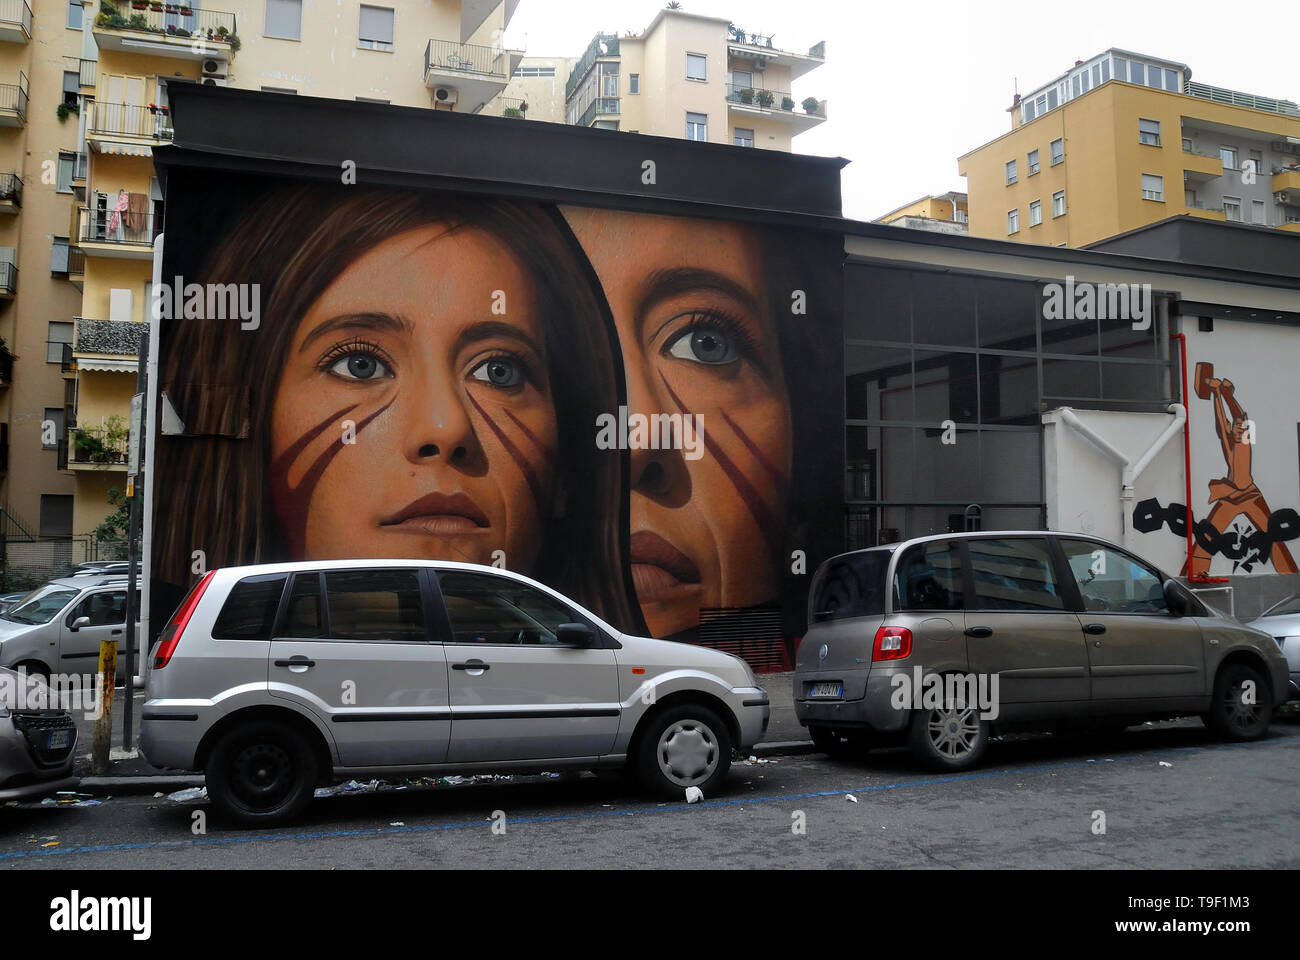 Jorit Agoch, 28, is Neapolitan street artist of international renown, Neapolitan father and Dutch mother. He creates giant murals on the facades of suburban buildings around the world. His works are present in Buenos Aires, Cochabamba, Aruba, Santiago de Chile, New York, Miami, Las Vegas, Sacramento, San Francisco, Shenzhen, Gaza. In Italy Jorit is mainly active in Naples where he makes huge paintings on blind facades of suburban buildings and also in the historic center. Naples, Vomero residential quarter, Jorit painting of Ilaria Cucchi, the sister of Stefano Cucchi. Stefano was killed in th - Stock Image